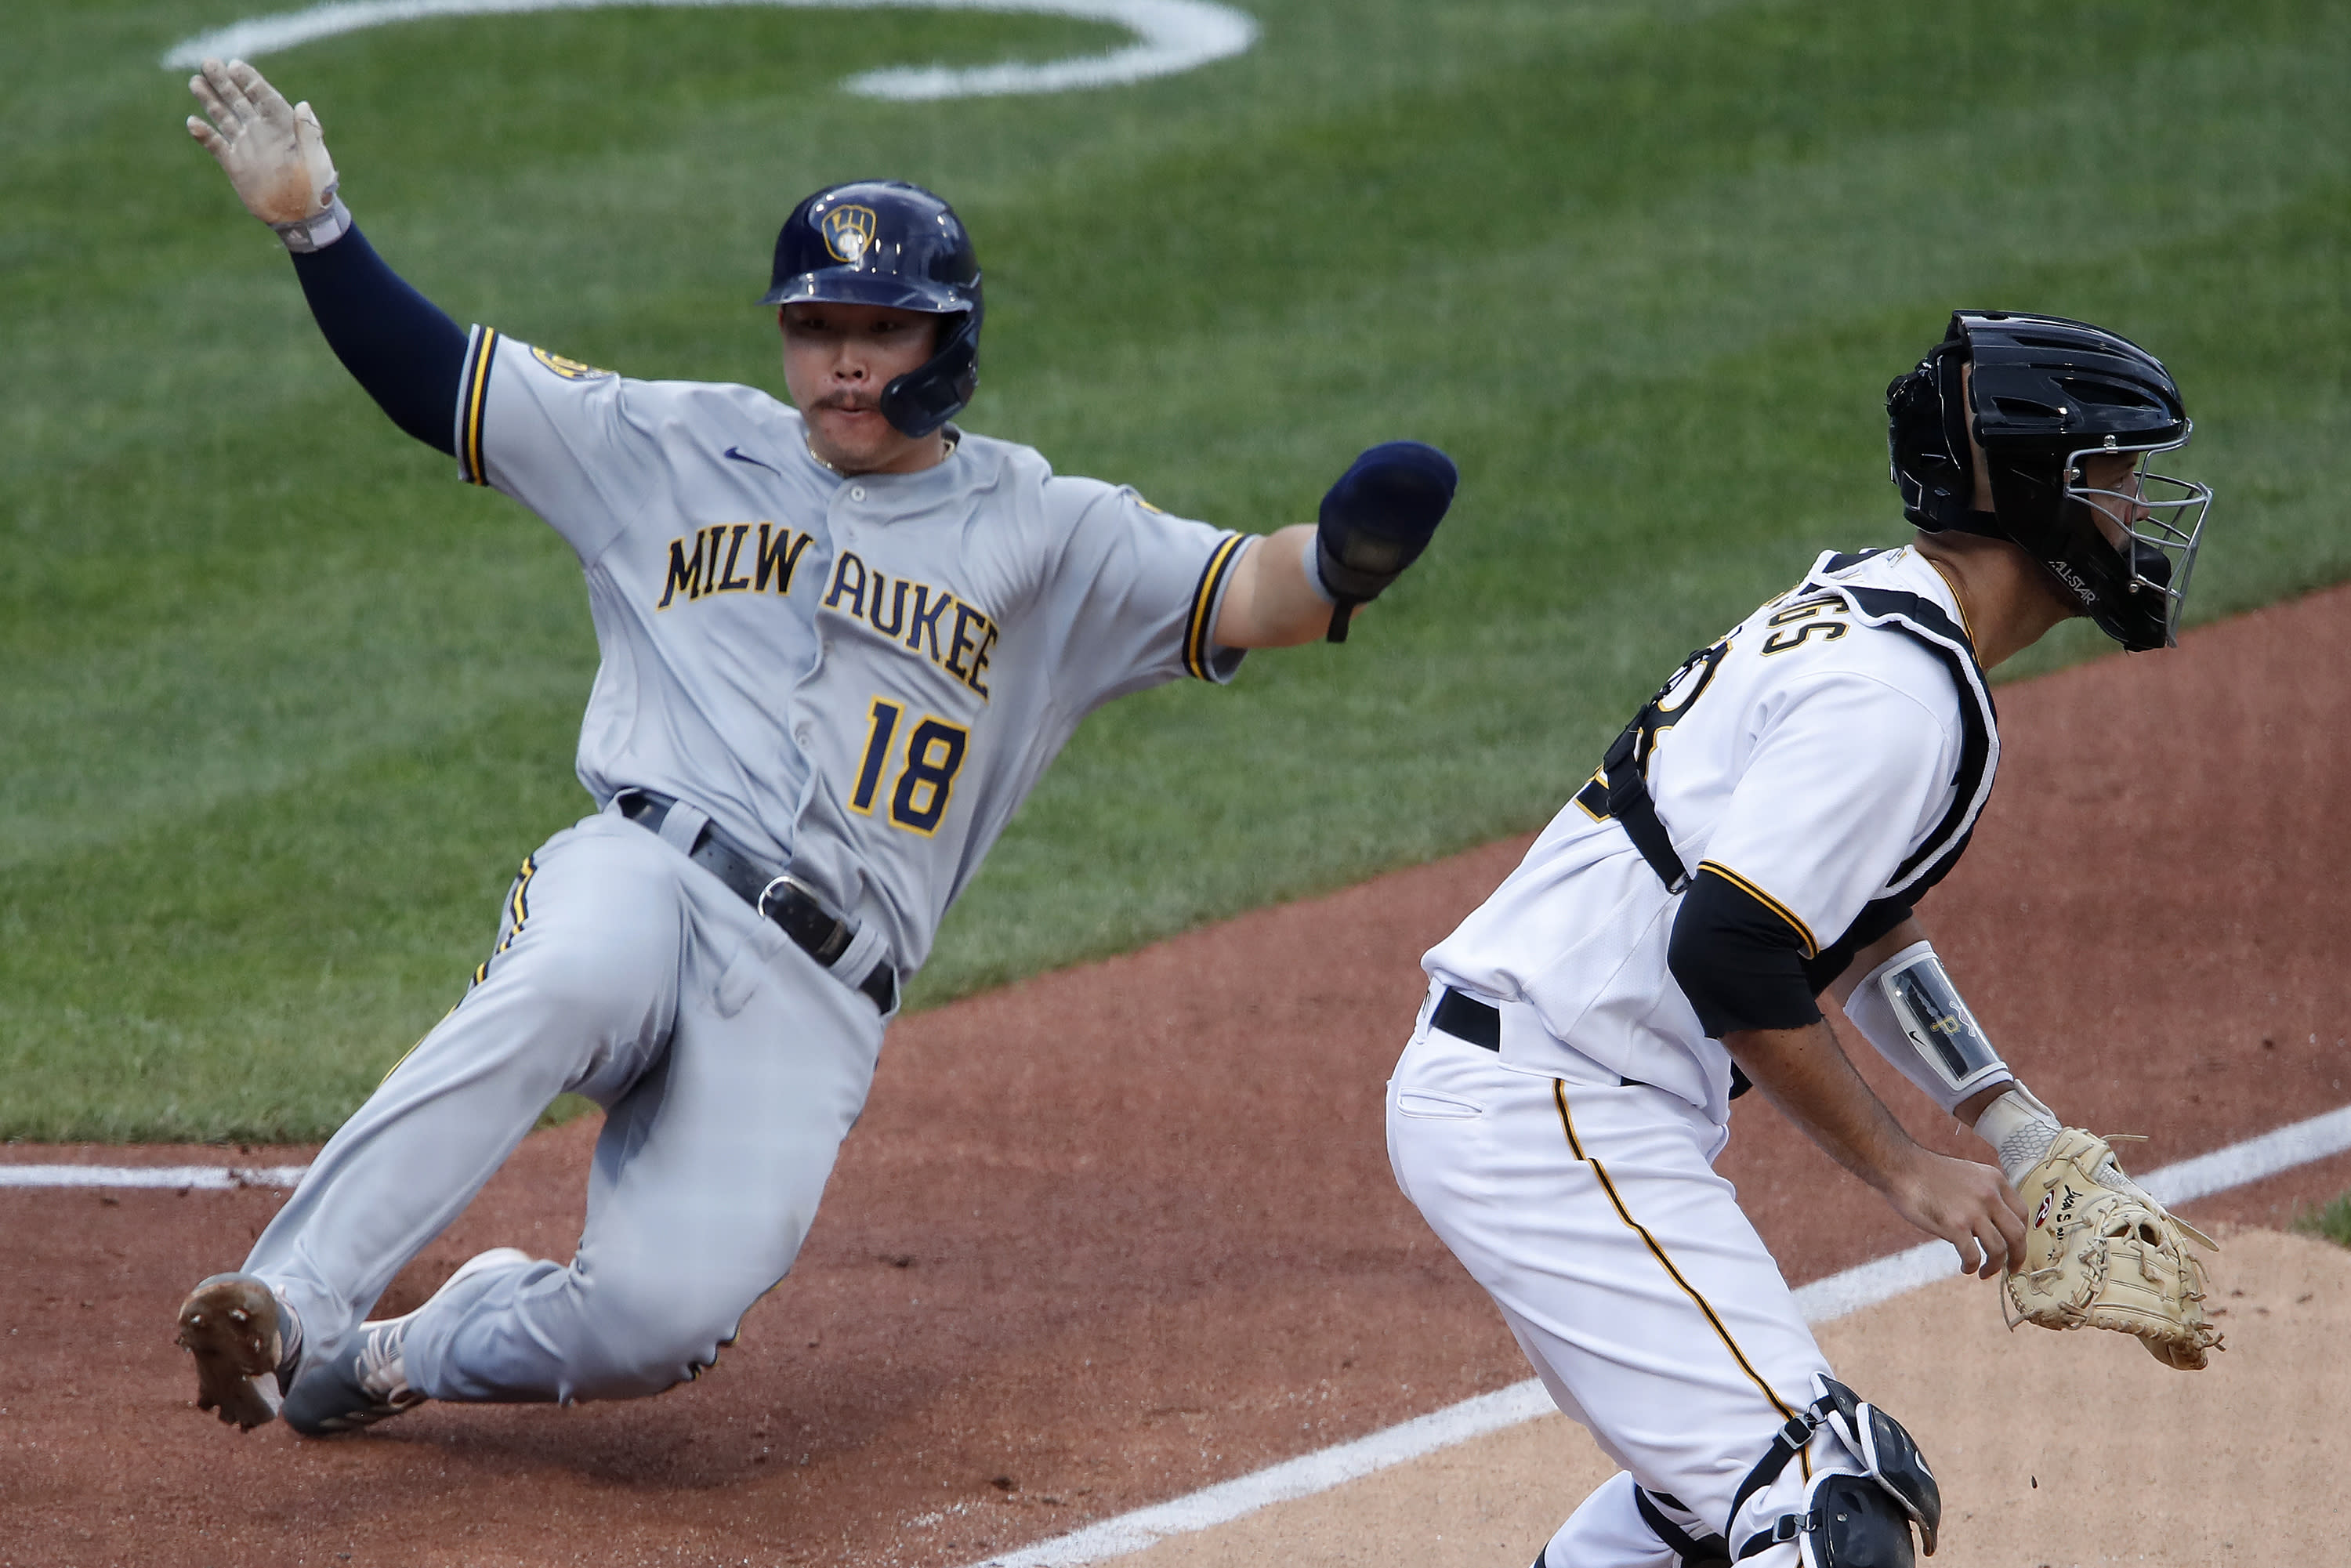 Milwaukee Brewers' Keston Hiura (18) scores on a double by Justin Smoak as Pittsburgh Pirates catcher Jacob Stallings waits for the late relay during the fourth inning of a baseball game in Pittsburgh, Sunday, Aug. 23, 2020. (AP Photo/Gene J. Puskar)